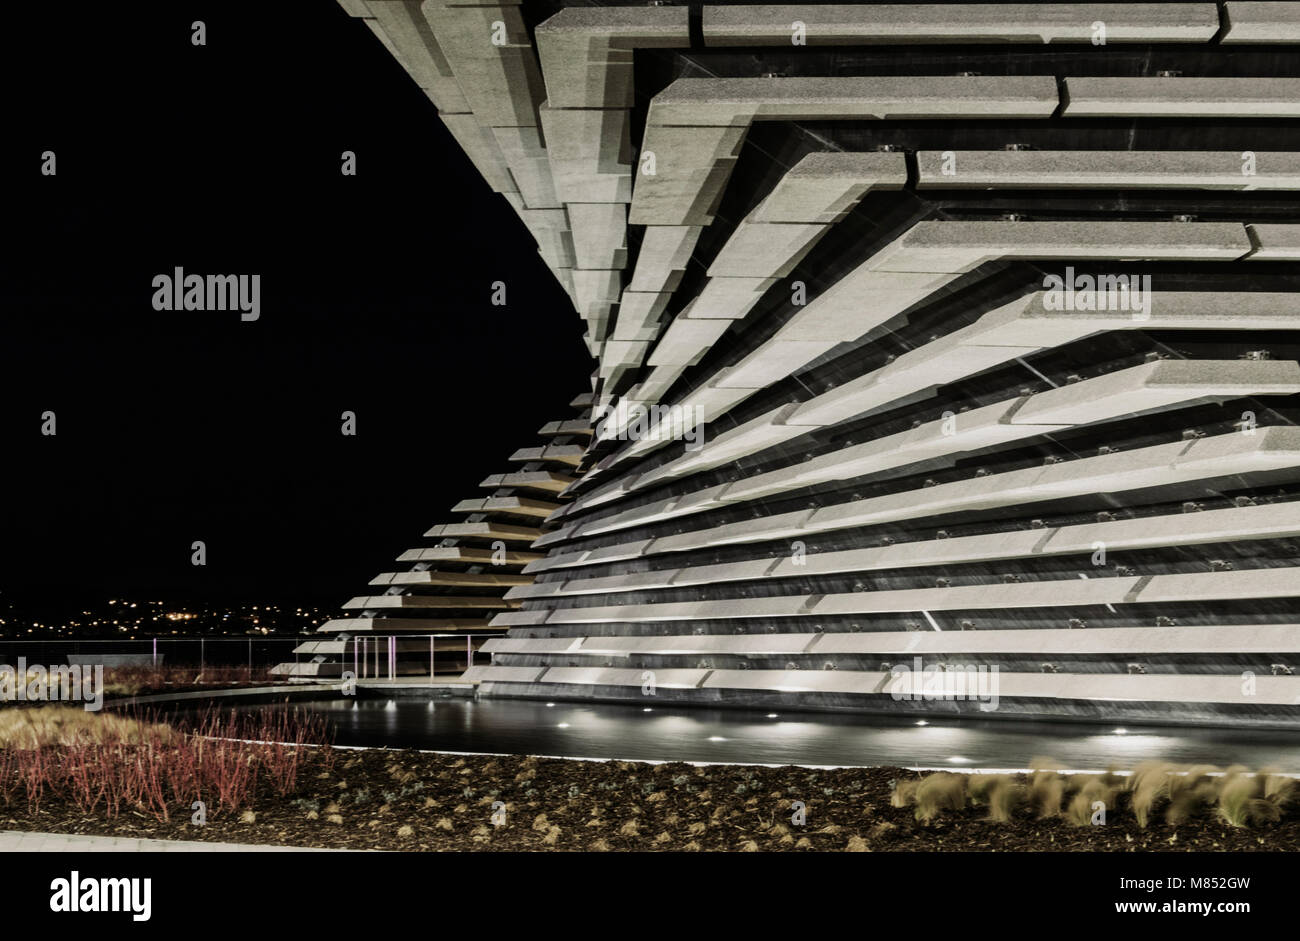 The V&A design museum in Dundee is a signature building by world famous Japanese architect Kengo Kuma. Stock Photo